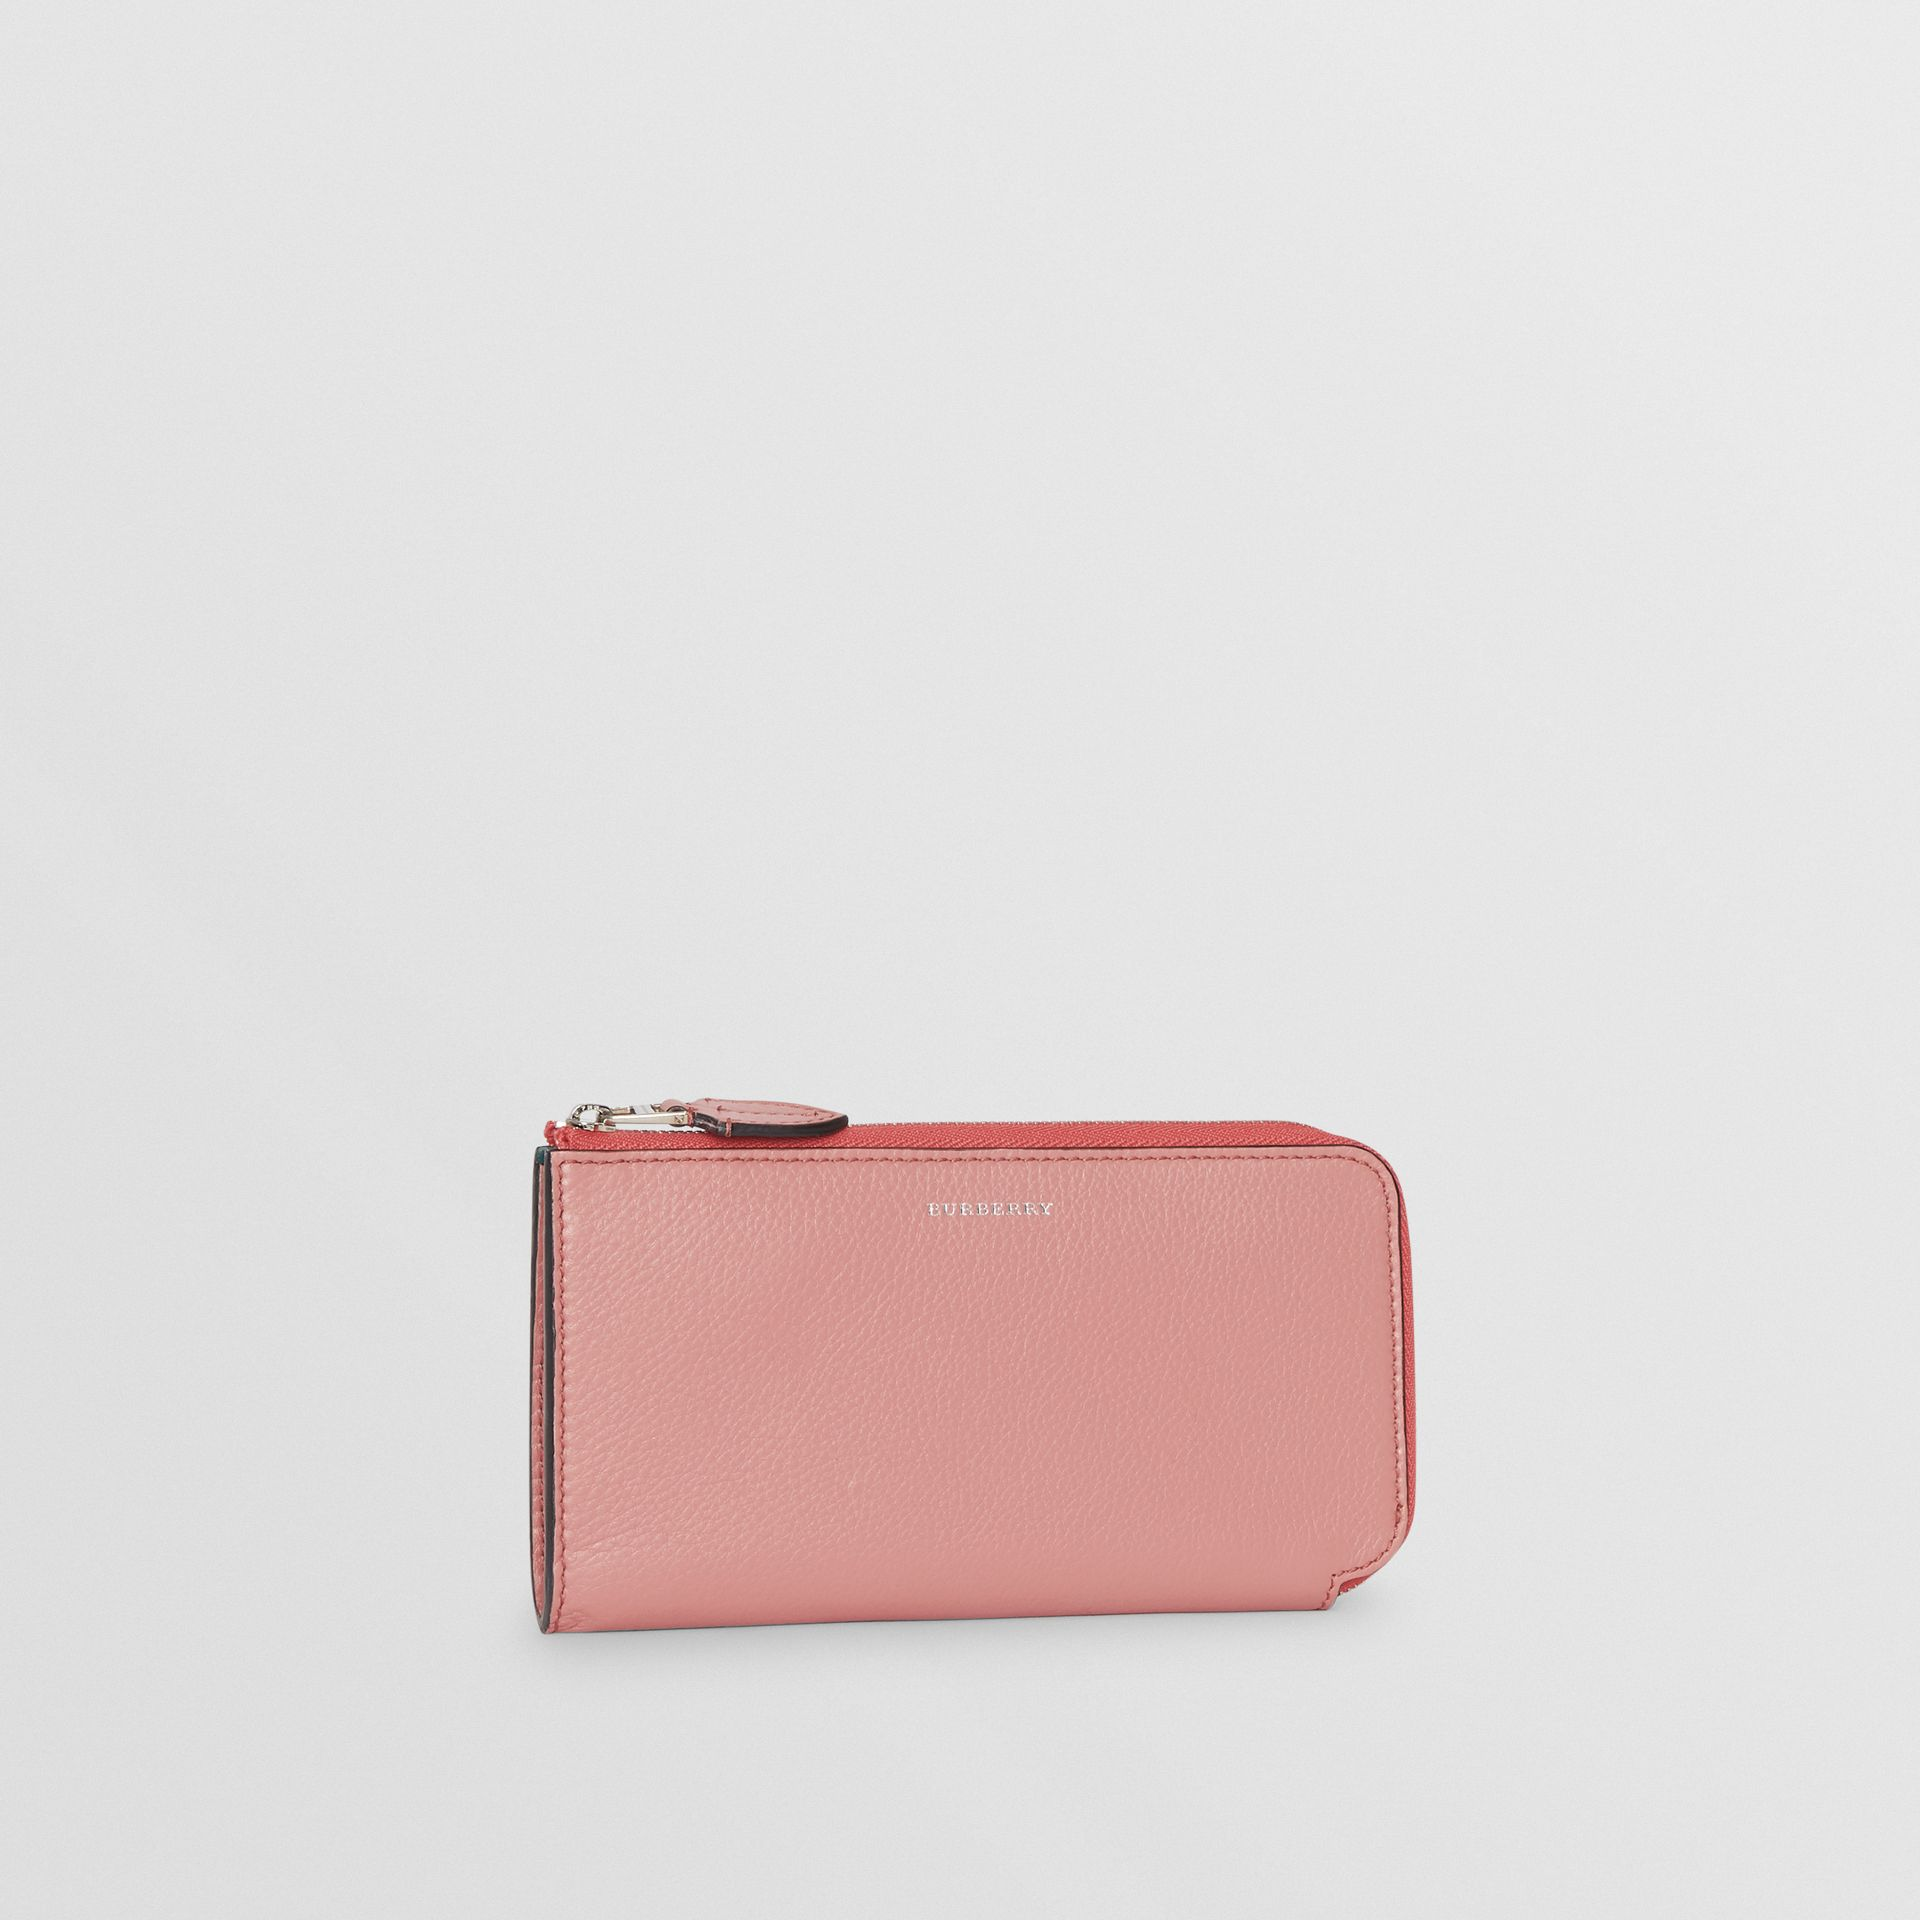 Two-tone Leather Ziparound Wallet and Coin Case in Dusty Rose - Women | Burberry - gallery image 4